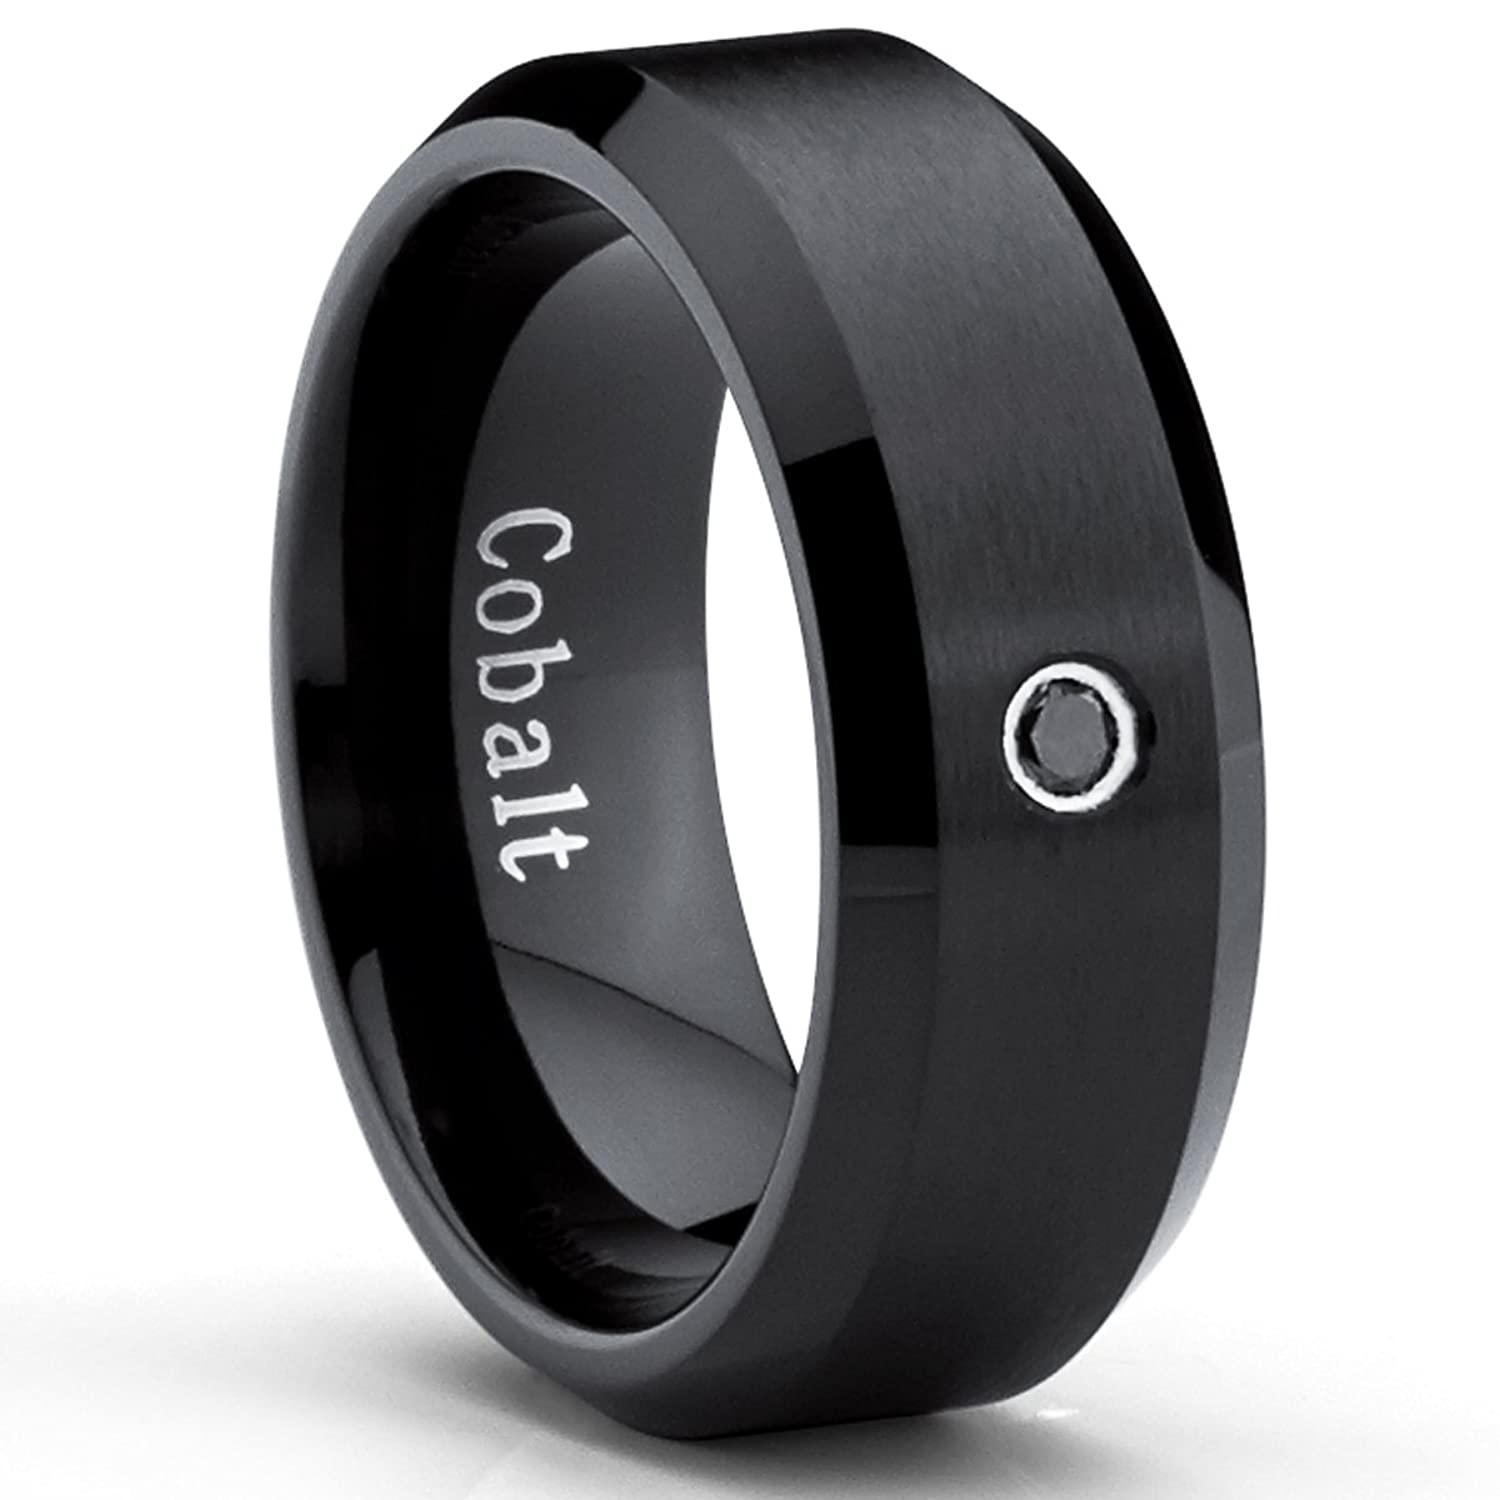 black cobalt ring mens wedding band with 004 real black diamond 8mmamazoncom - Mens Wedding Rings Black